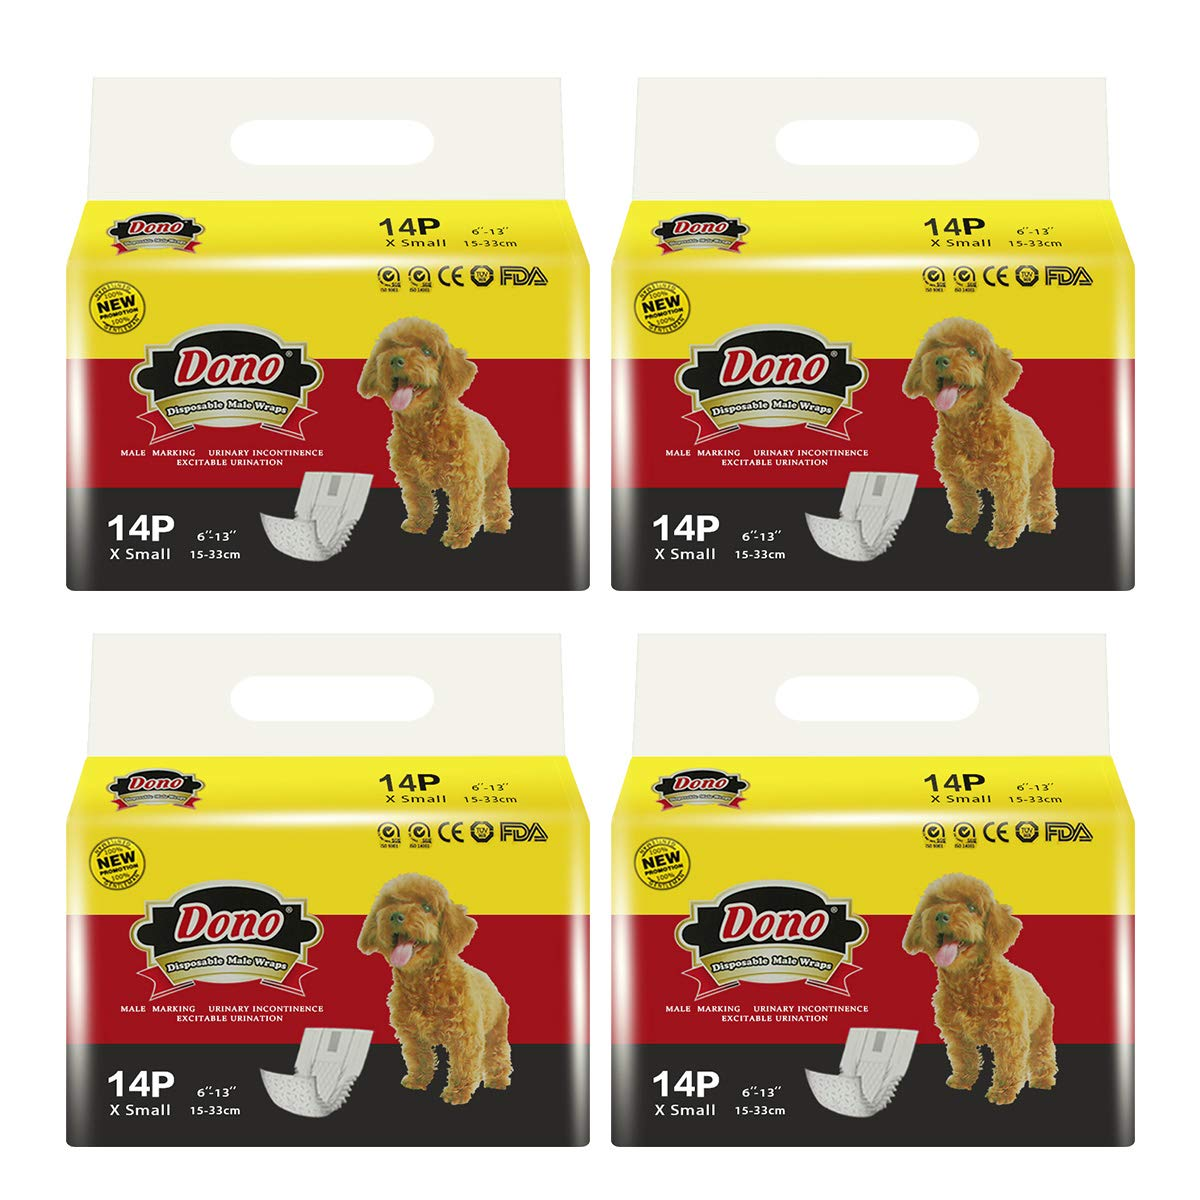 DONO Disposable Male Wraps Dog Diapers Super Absorbent Soft Diapers for Male Dogs,with Wetness Indicator,56pcs,XS (6''-13'') by DONO